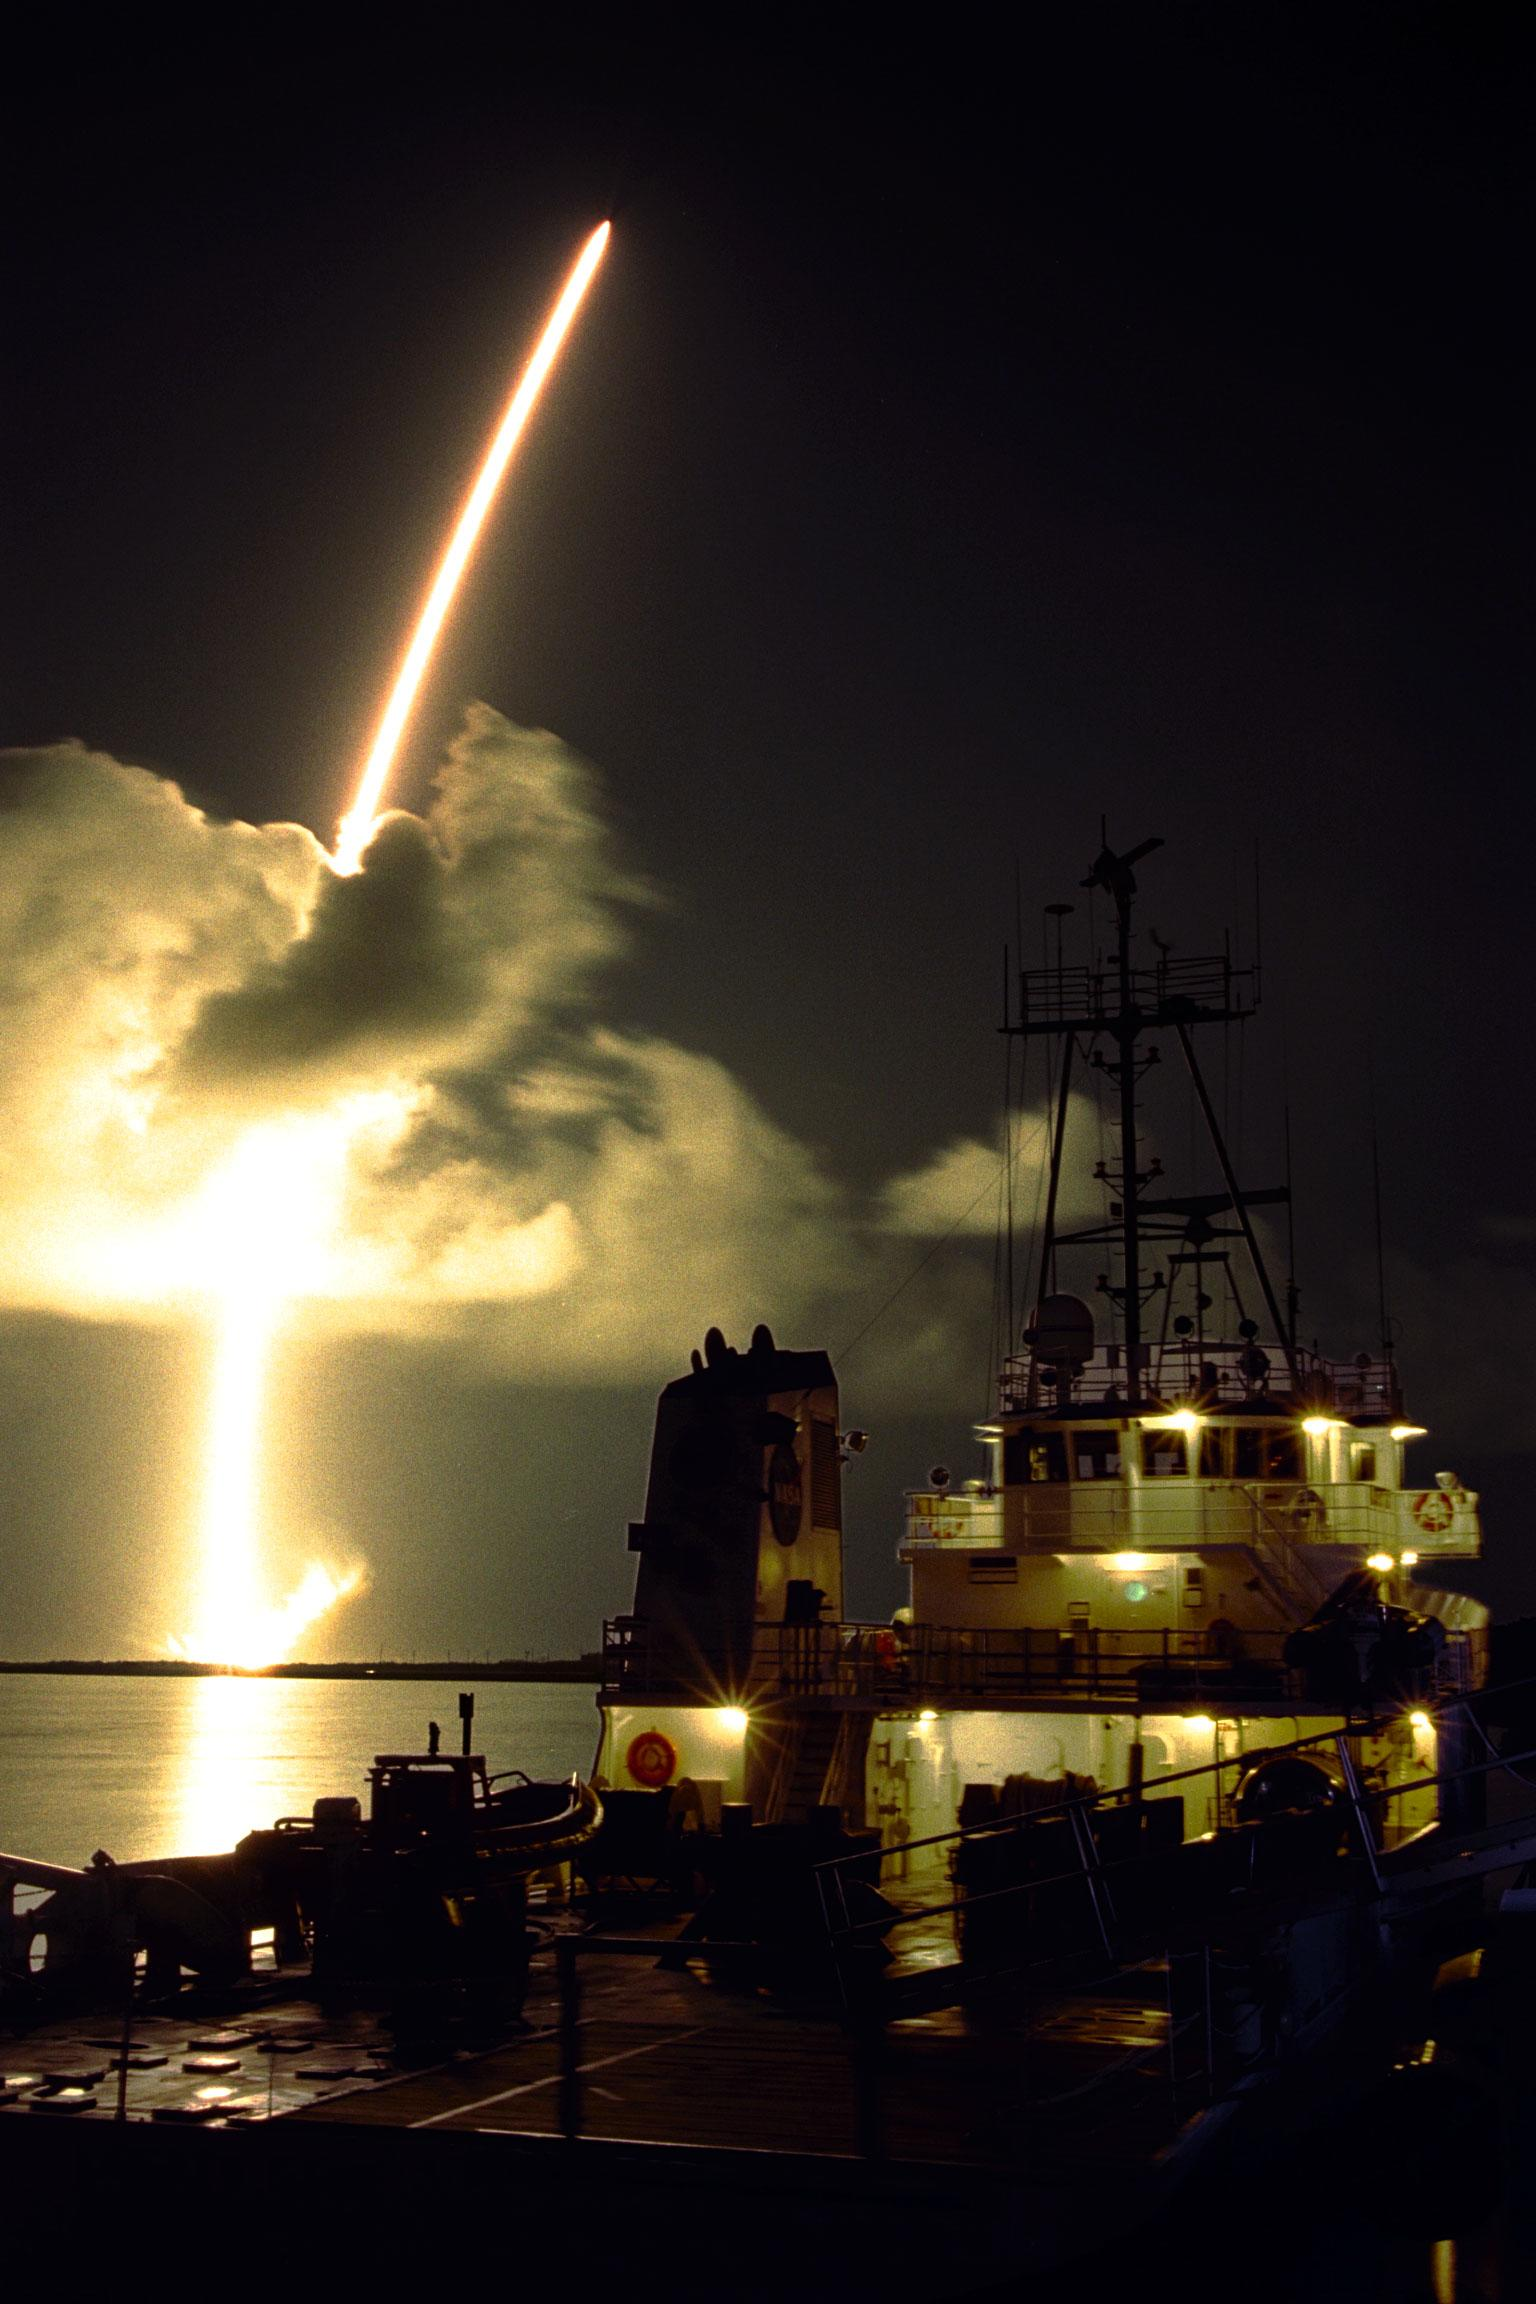 Timelapse image shows rocket streaking through a cloud.